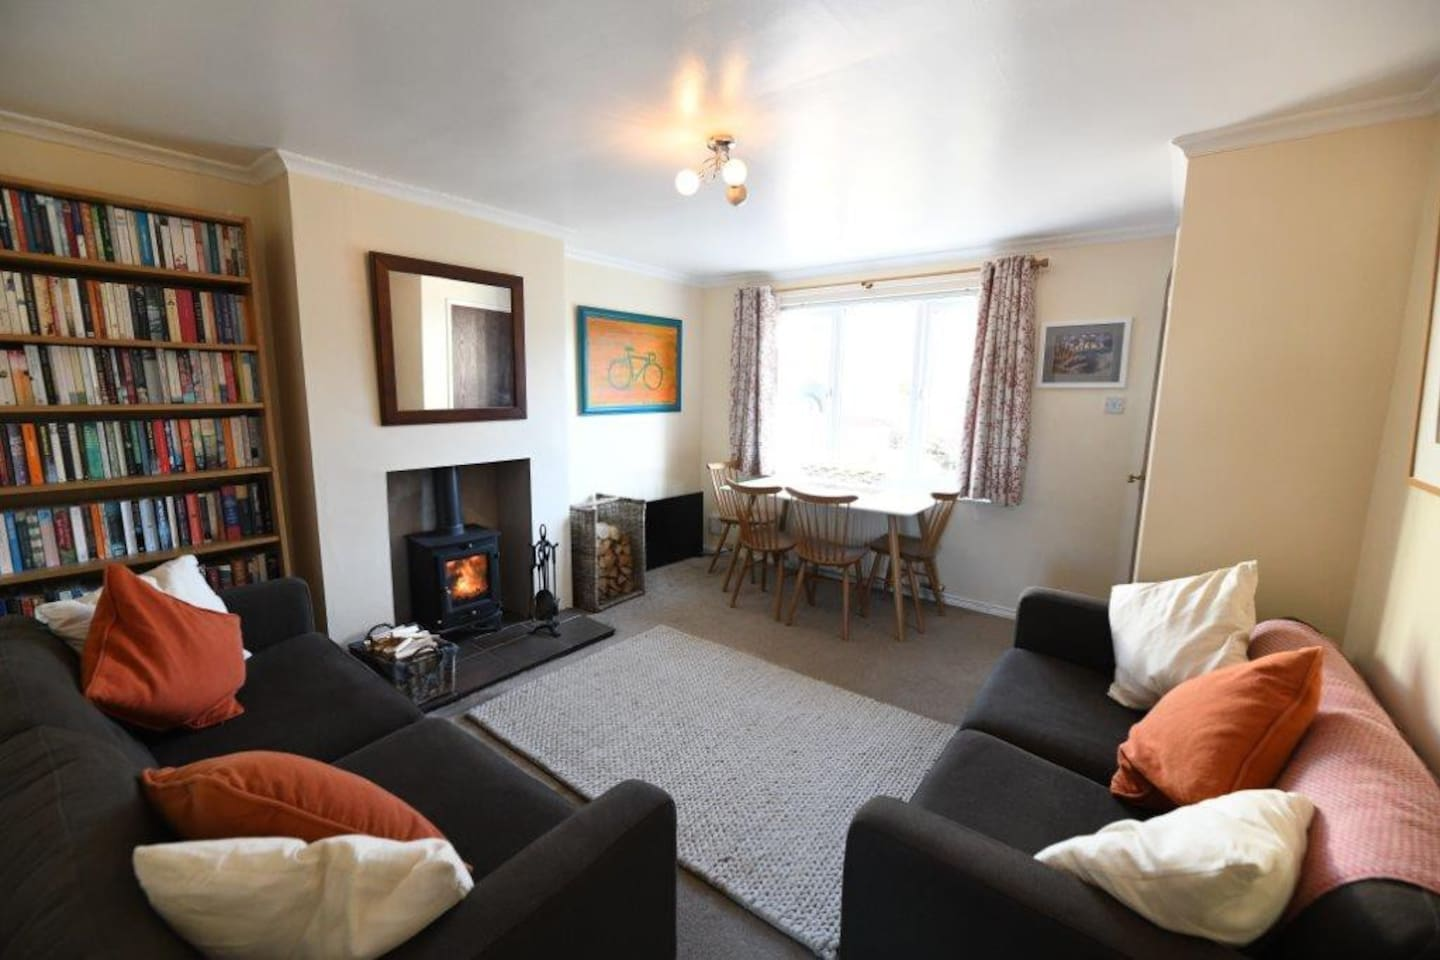 The shared living / dining room, with toasty logburner, smart TV, and lots of books to dip into.